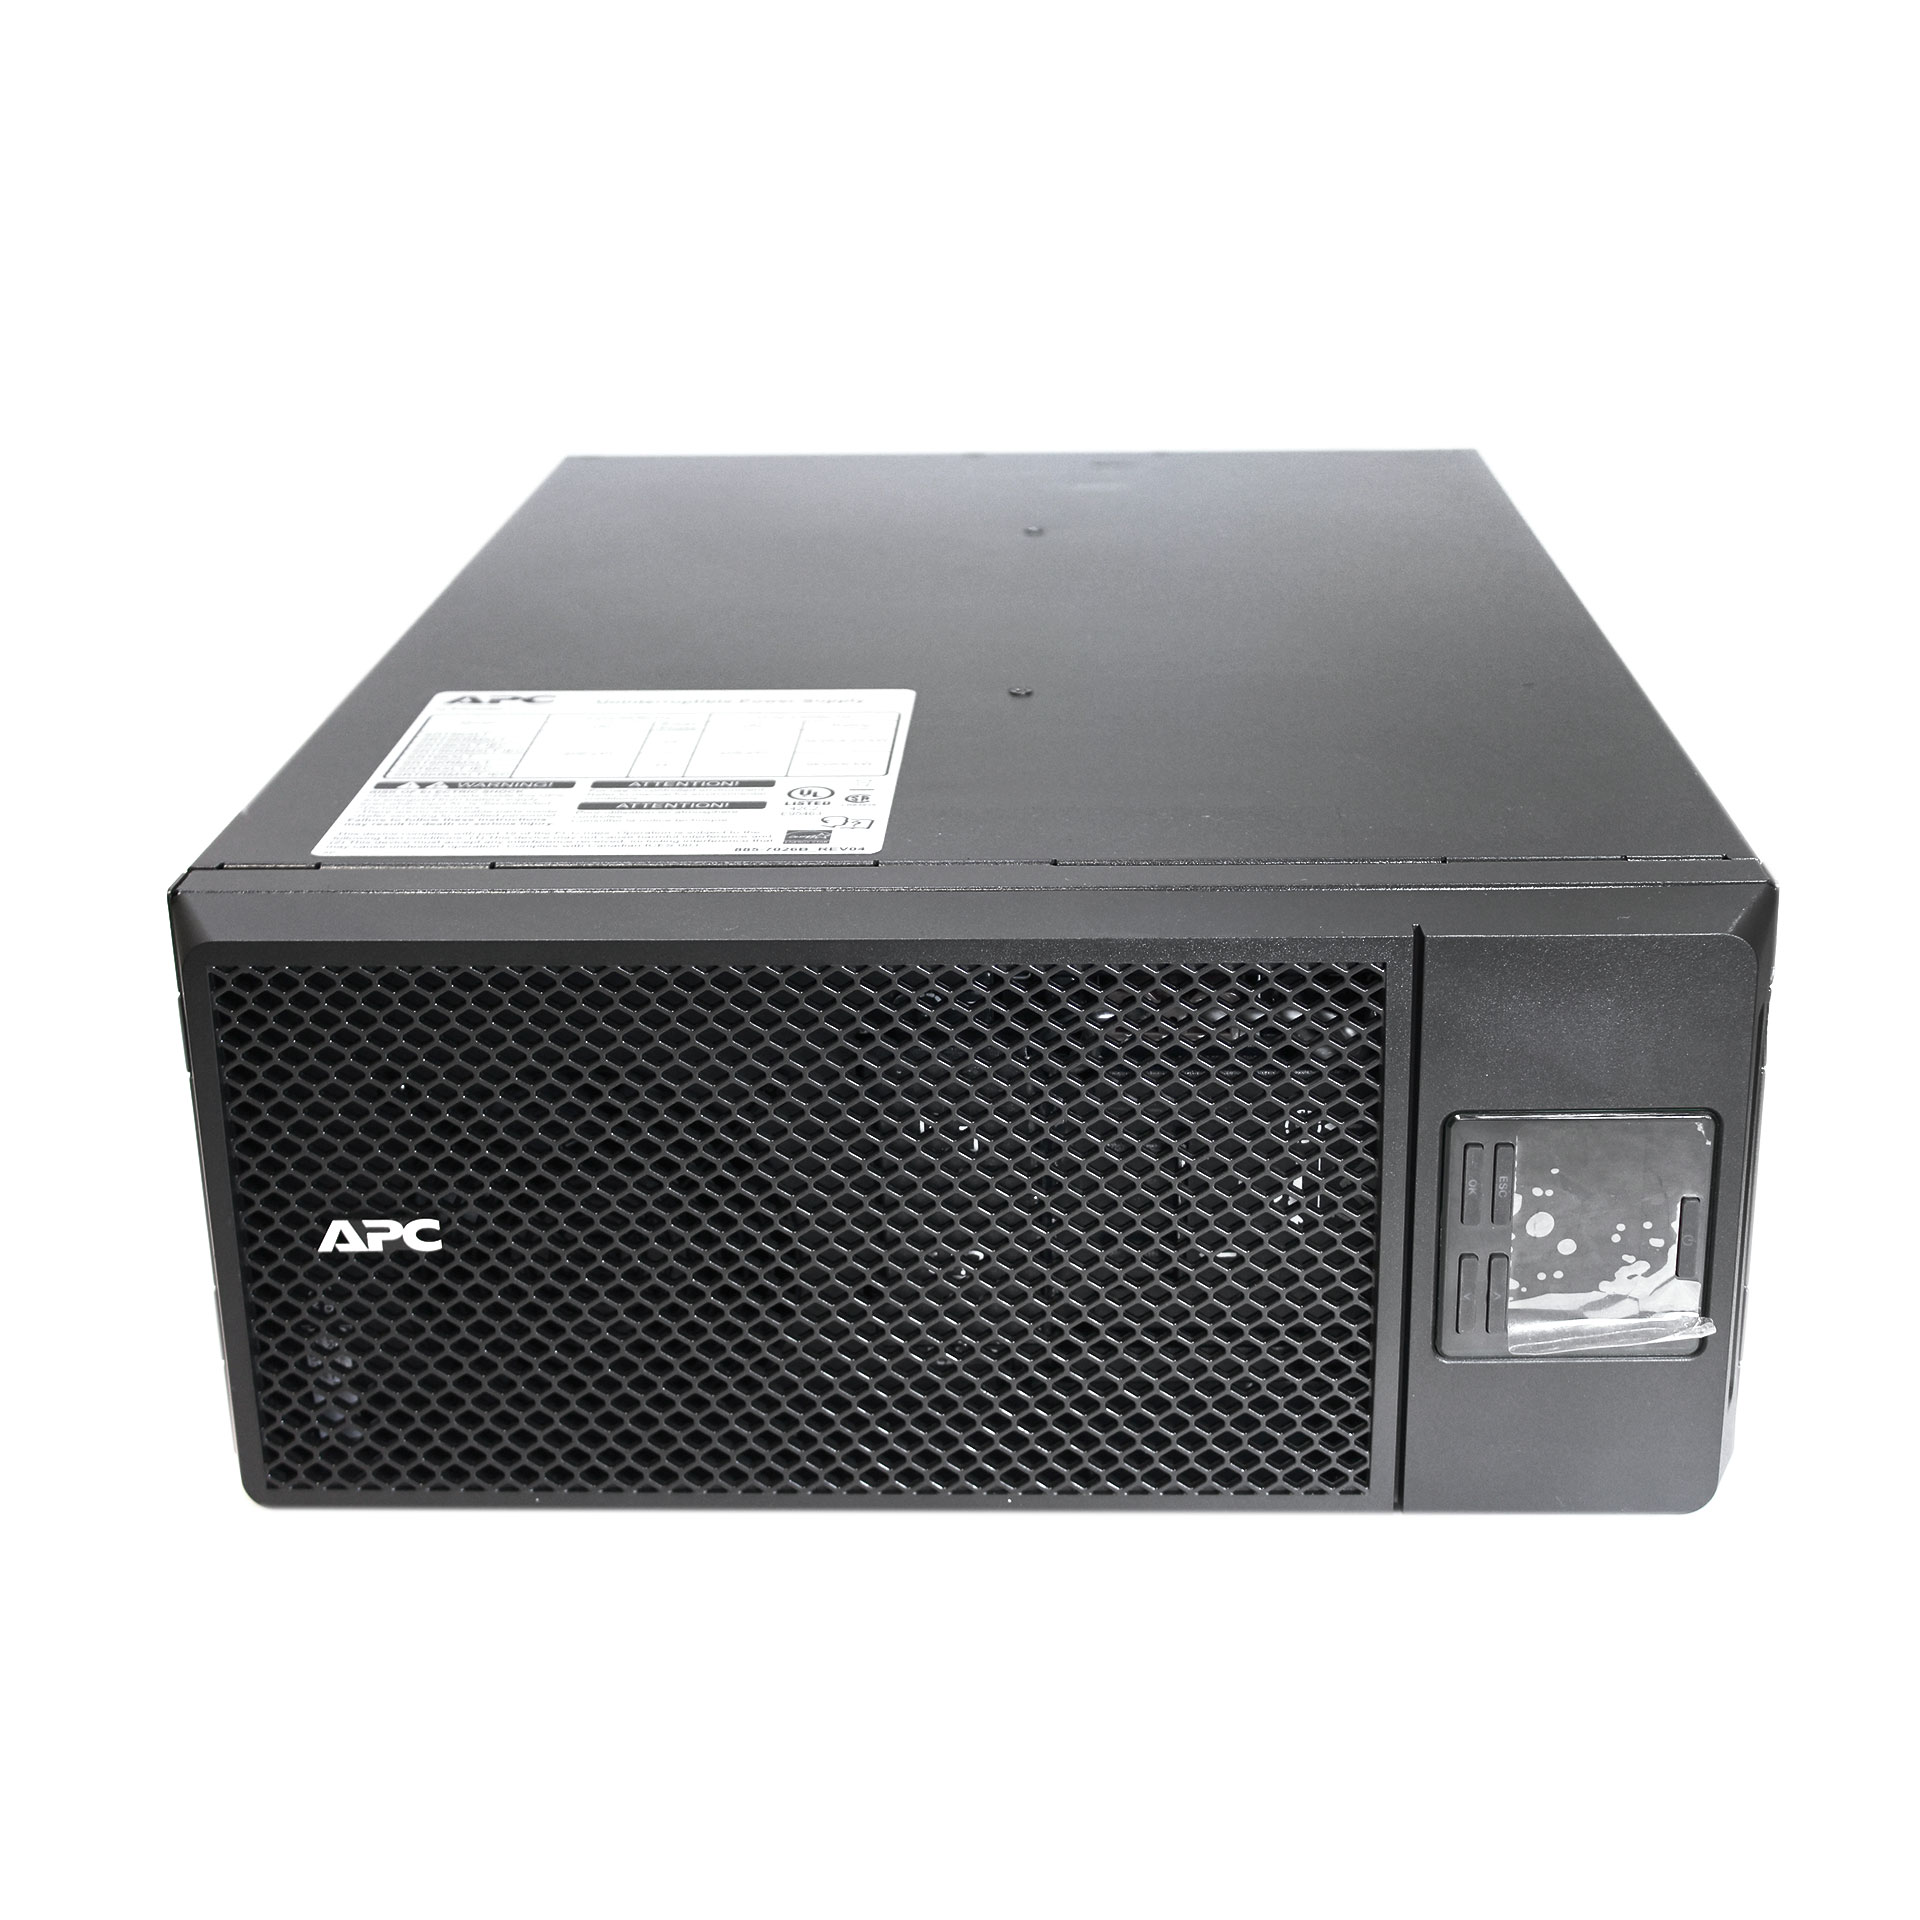 APC Smart-UPS On-Line SRT6KXLT 6000 VA 6000 W 6 Outlets UPS